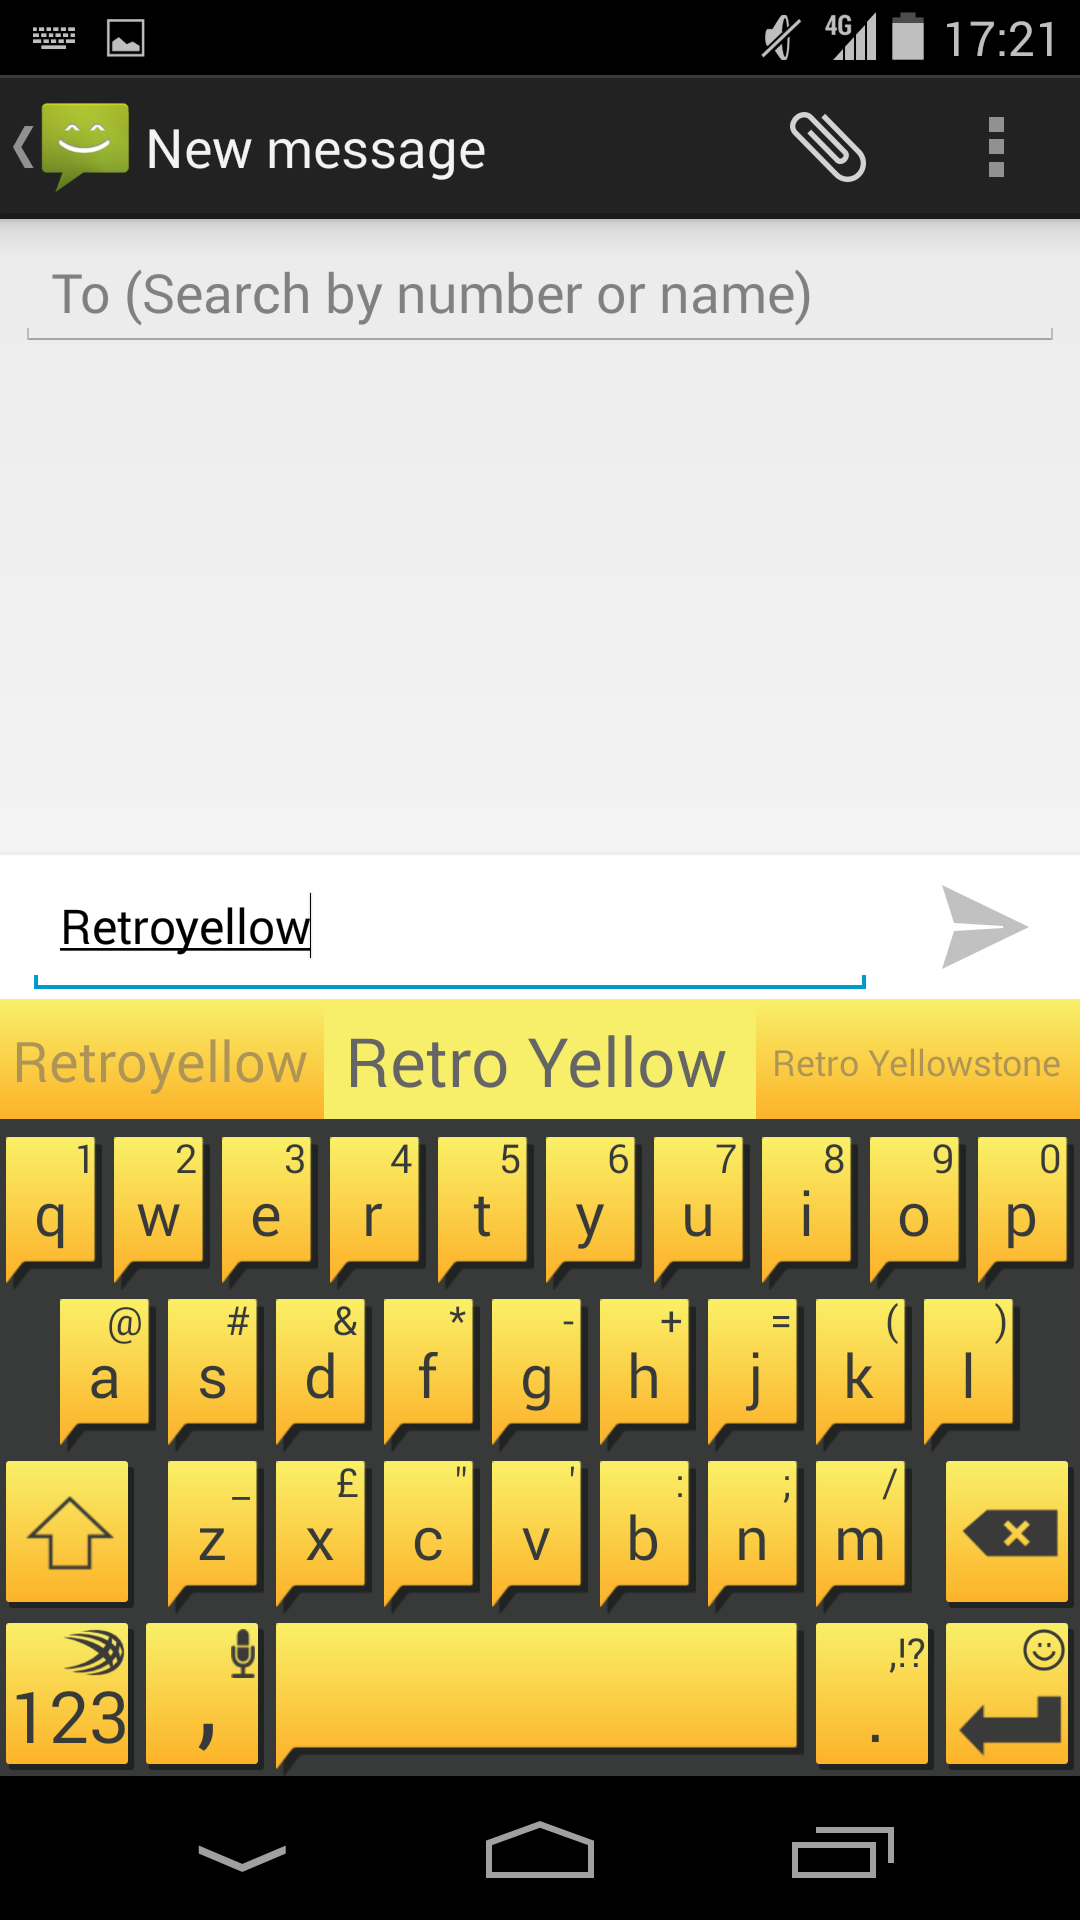 Simply the best all around predictive text keyboard - Android Central